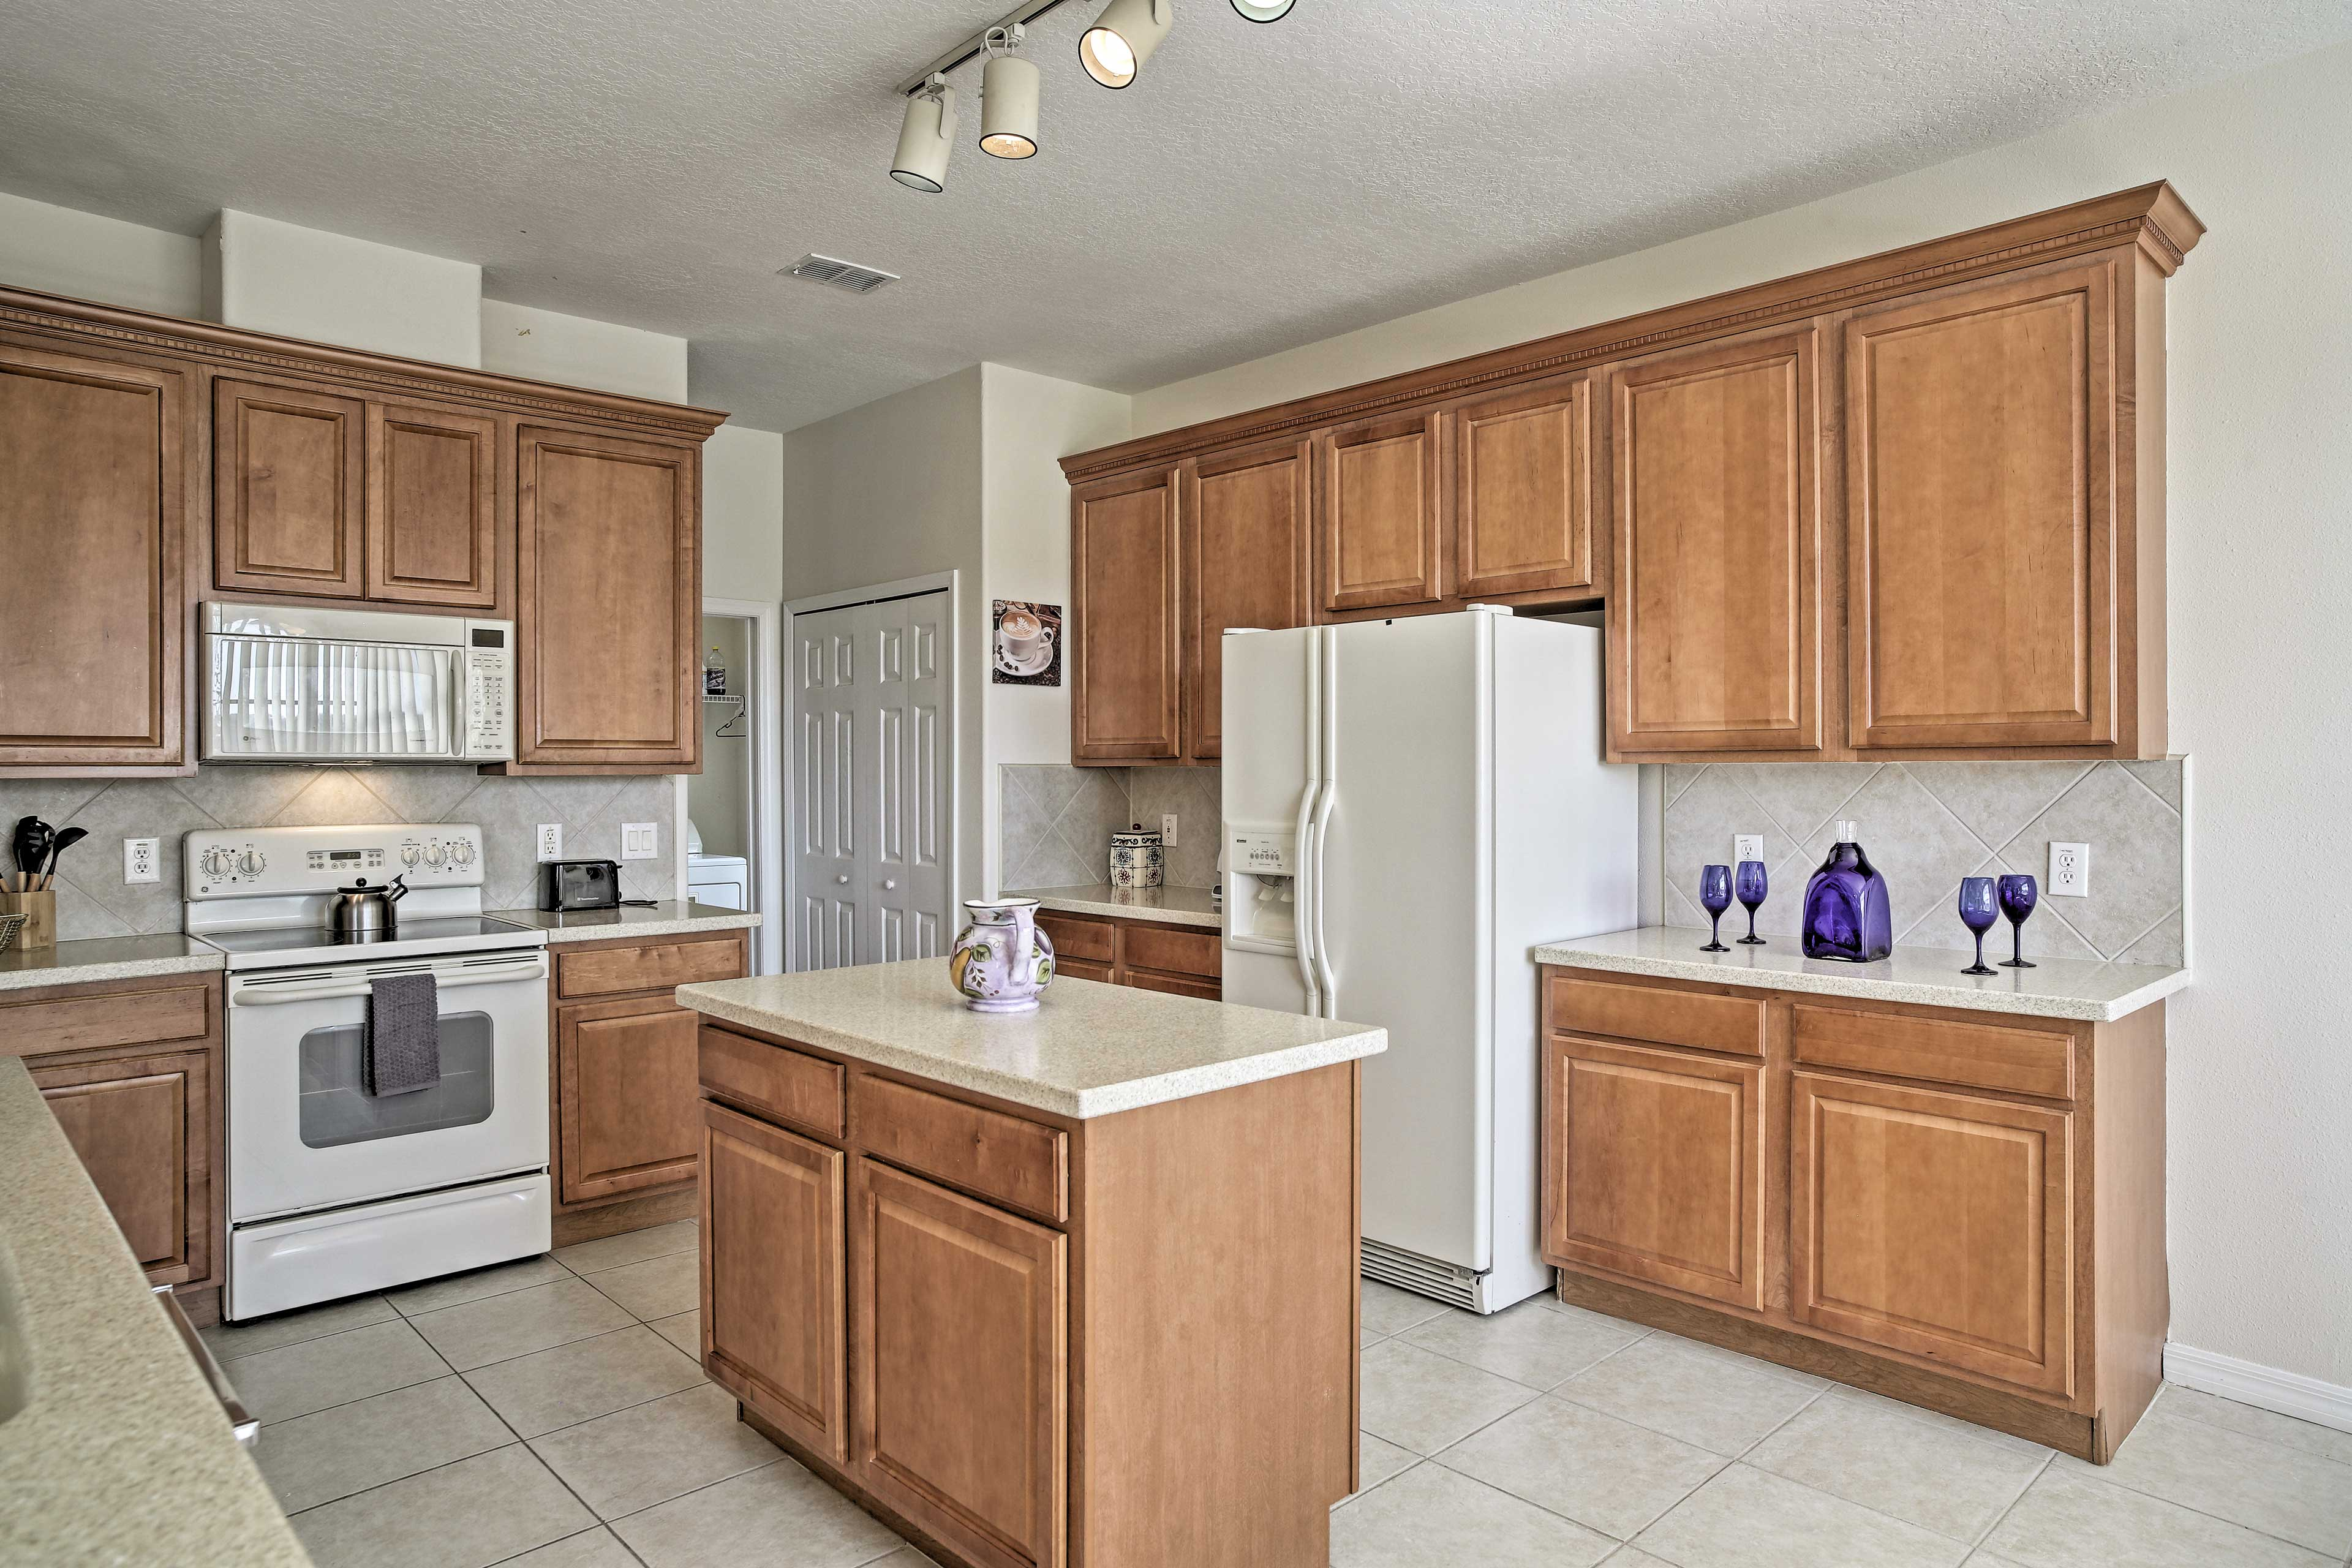 Entertain family and friends in the large kitchen.